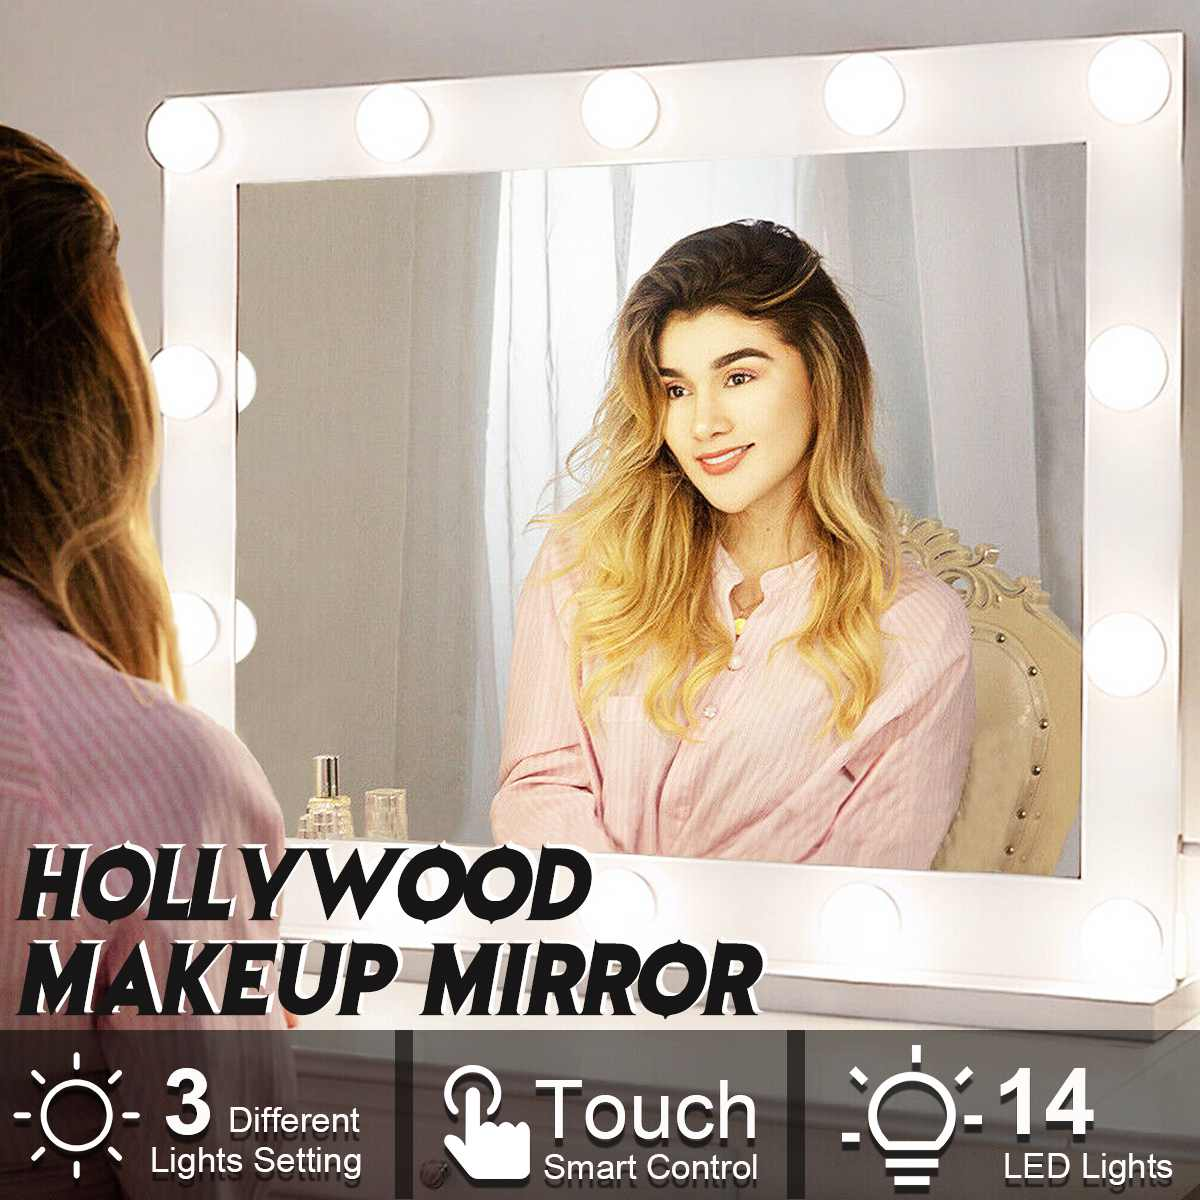 Hollywood Makeup Mirror Vanity Lighted Cosmetic Mirror with 14 LEDs Lights For Tabletop Bathroom Beauty Mirror Dressing Room 1